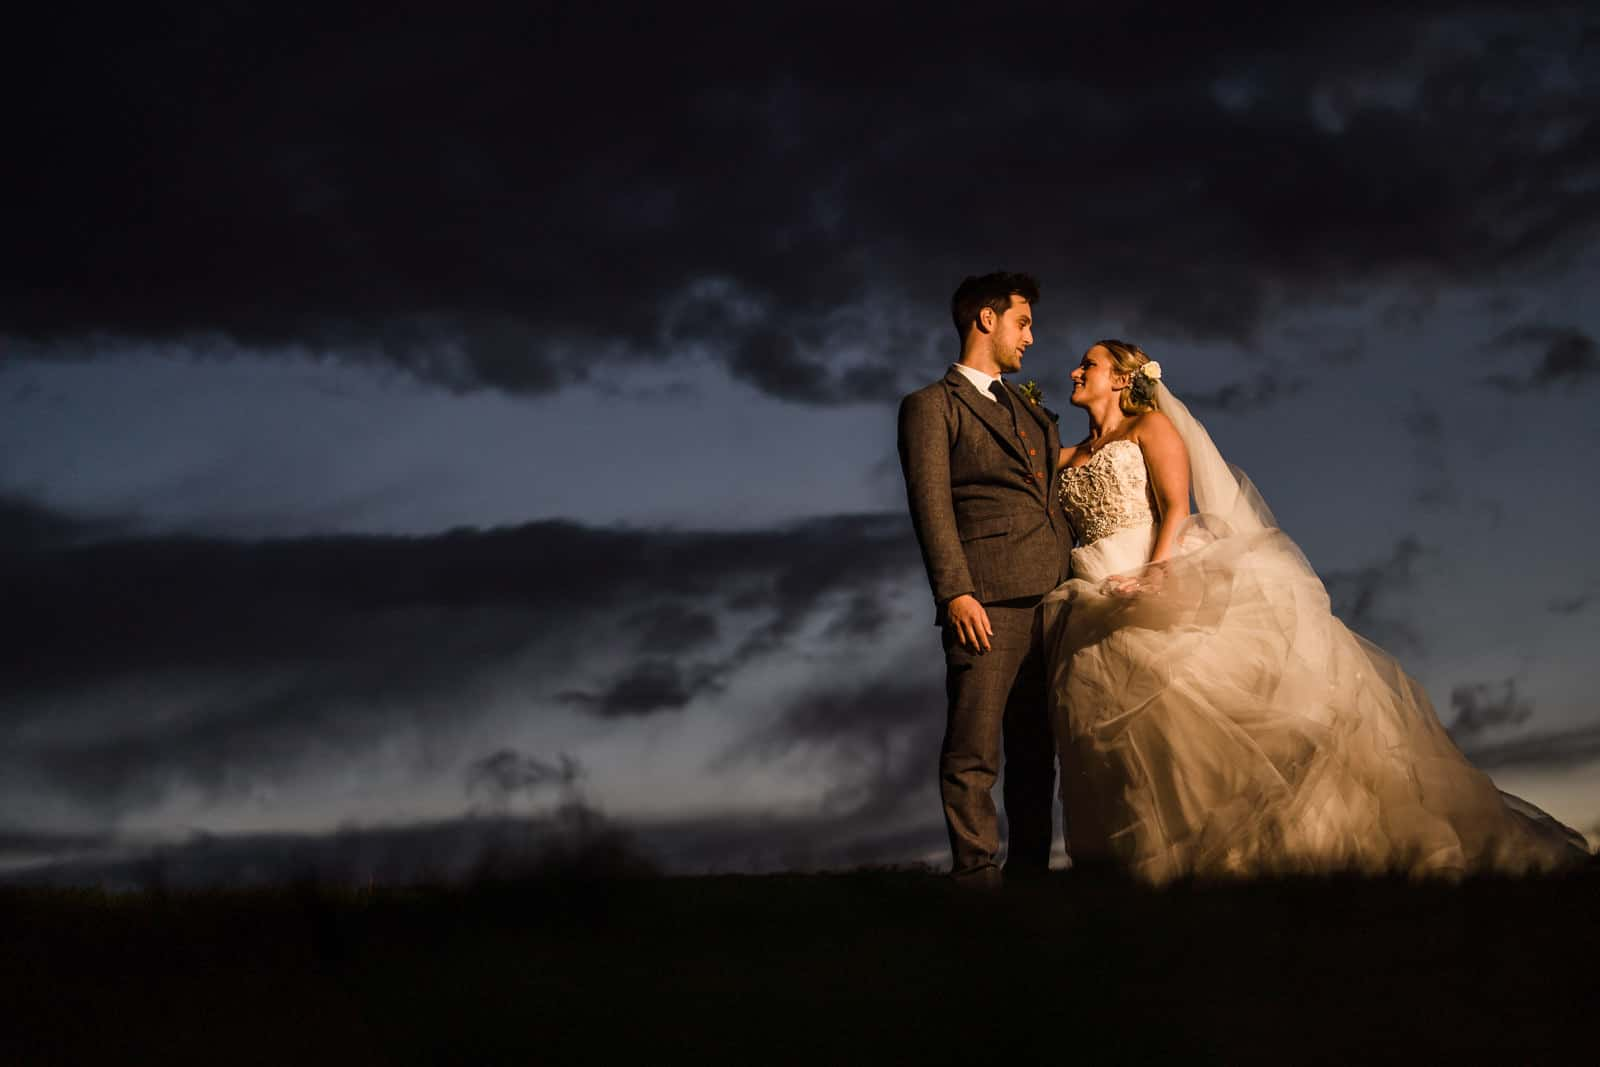 Photo of a wedding couple standing in Dodford Sheep field in evening, External flash used with magmod accessories